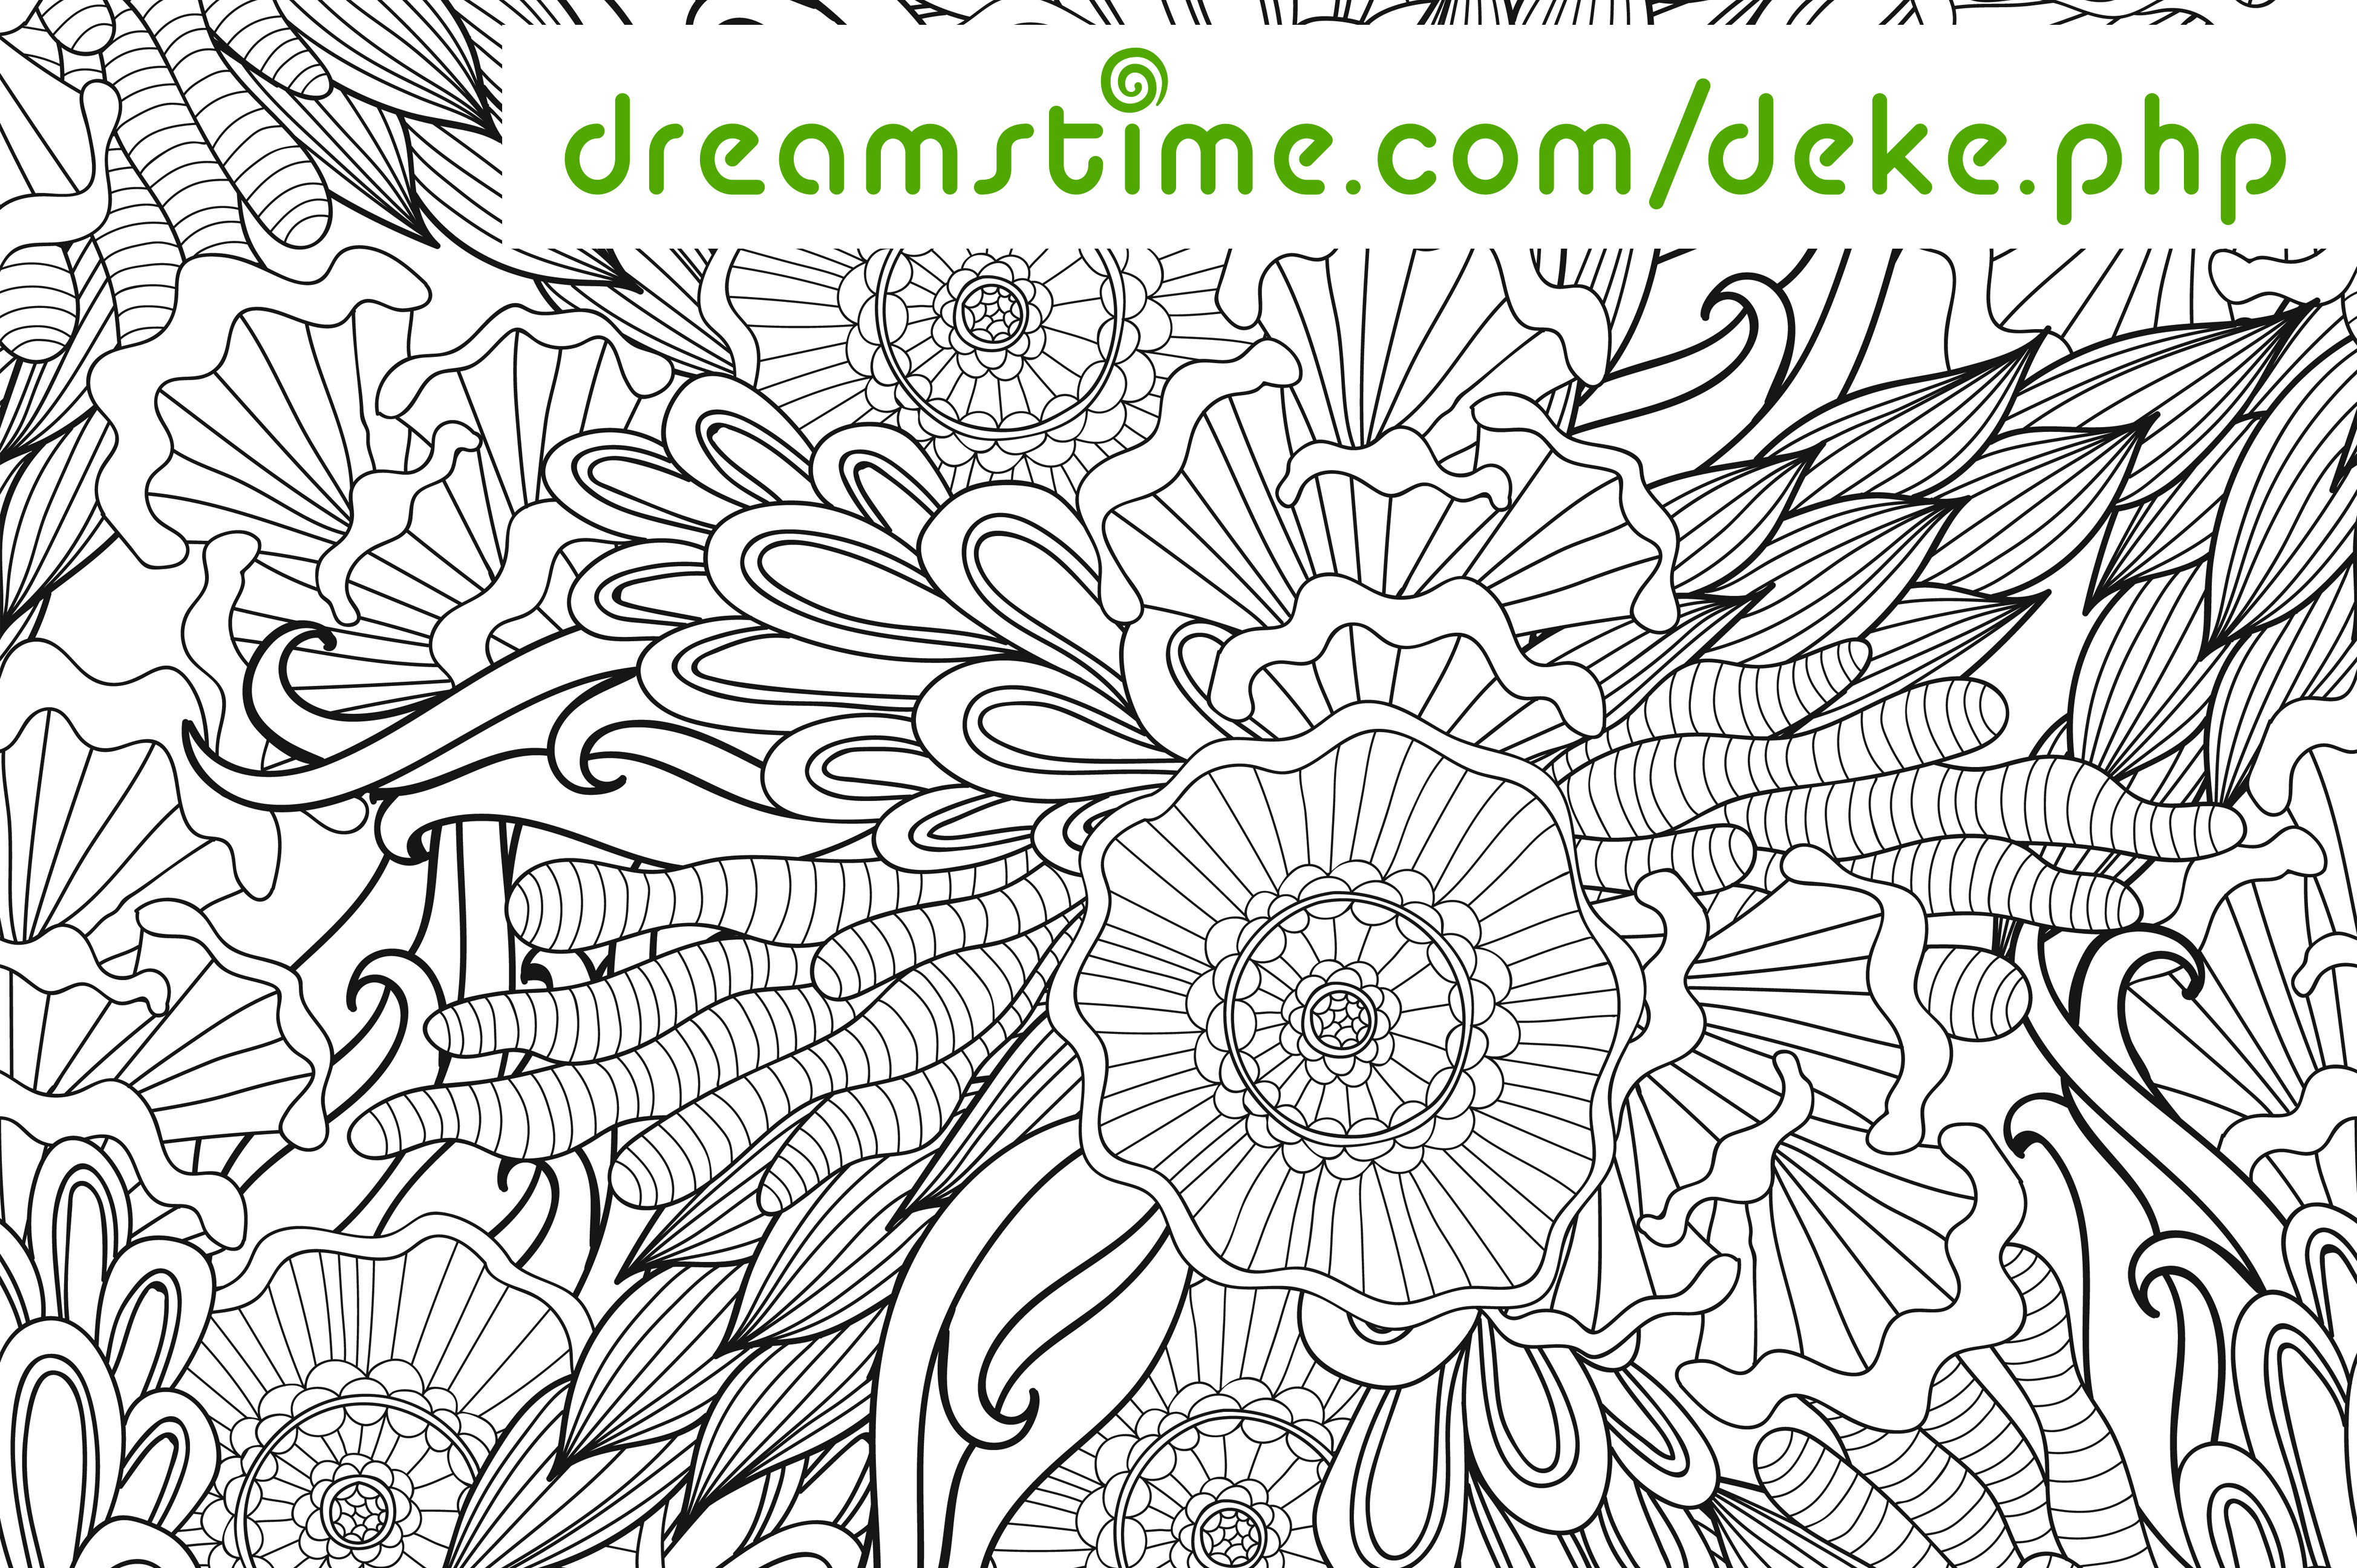 A floral line art piece from Dreamstime.com